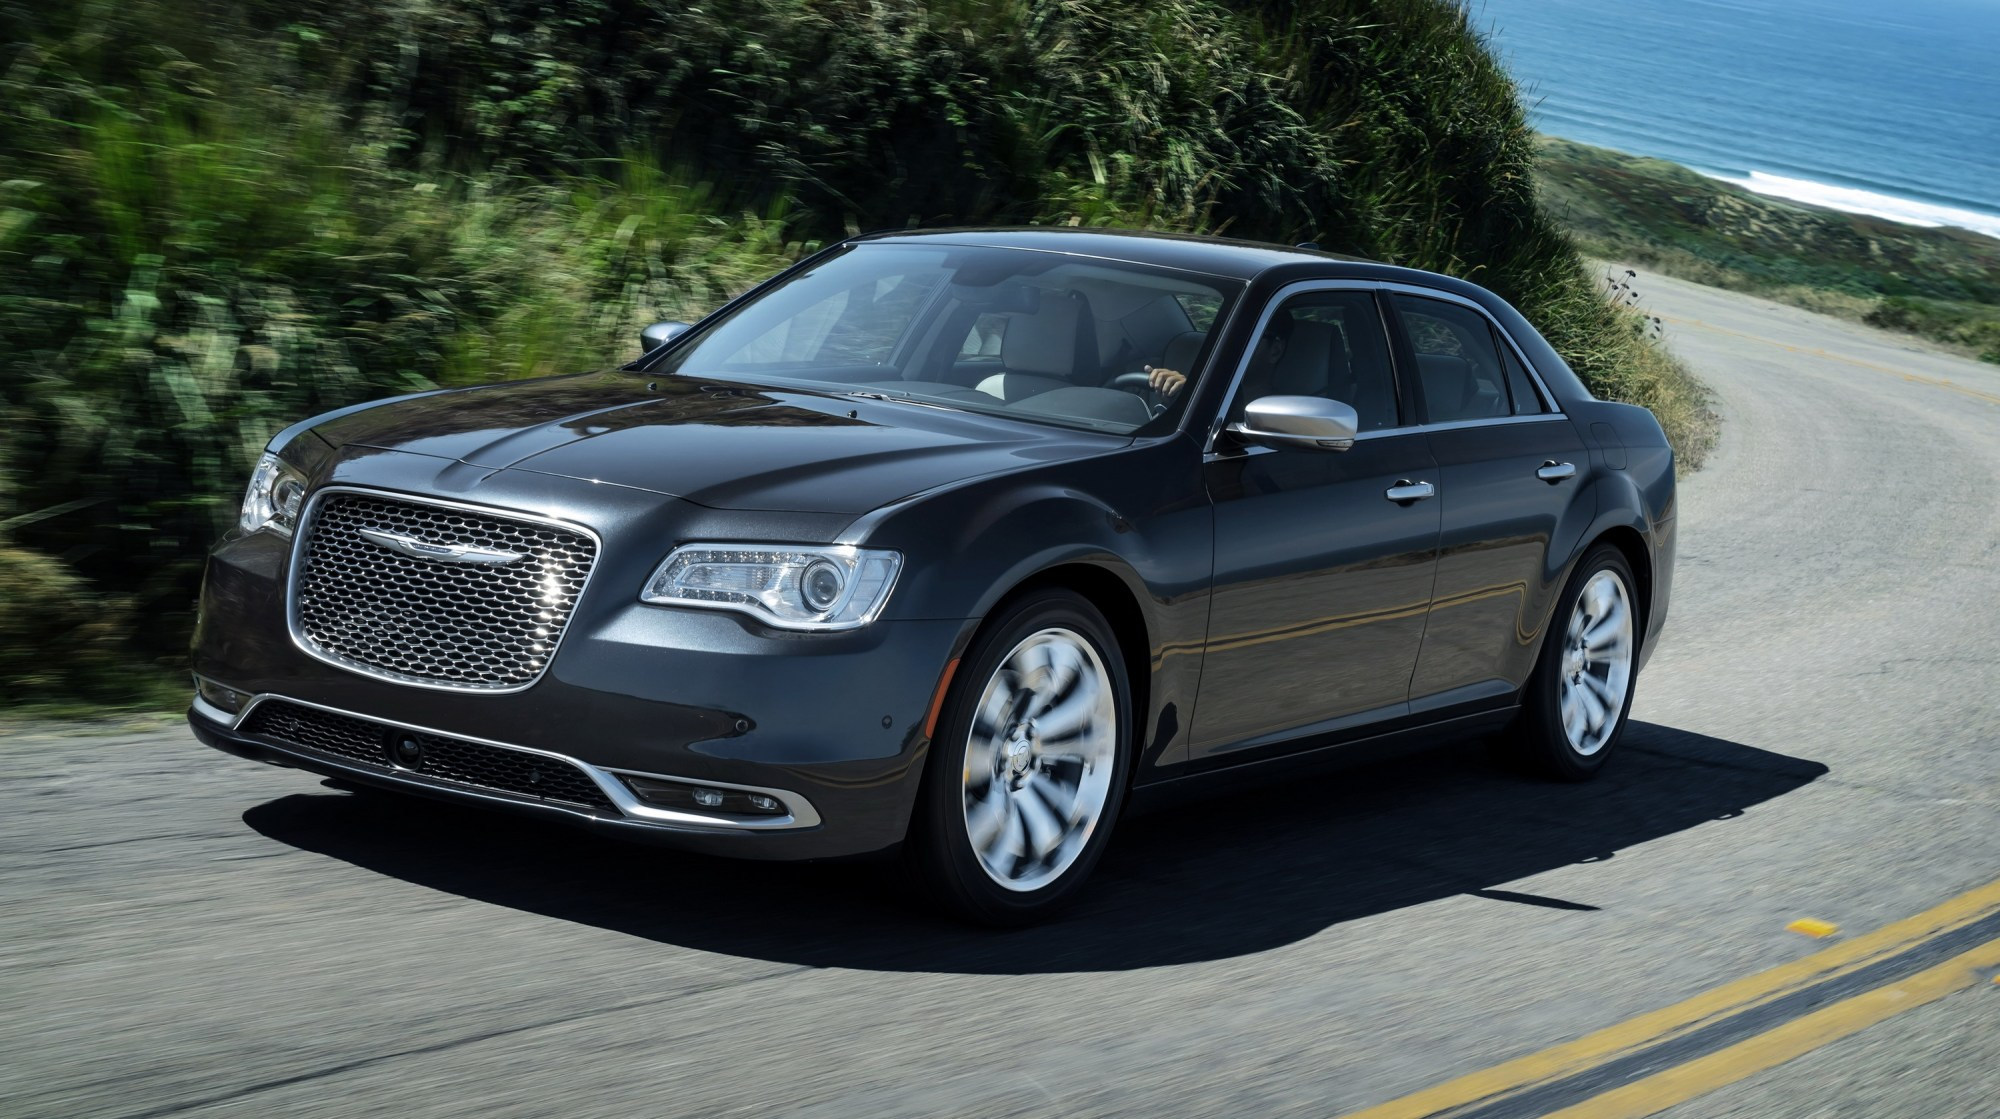 hight resolution of chrysler 300 reviews specs prices photos and videos top speed